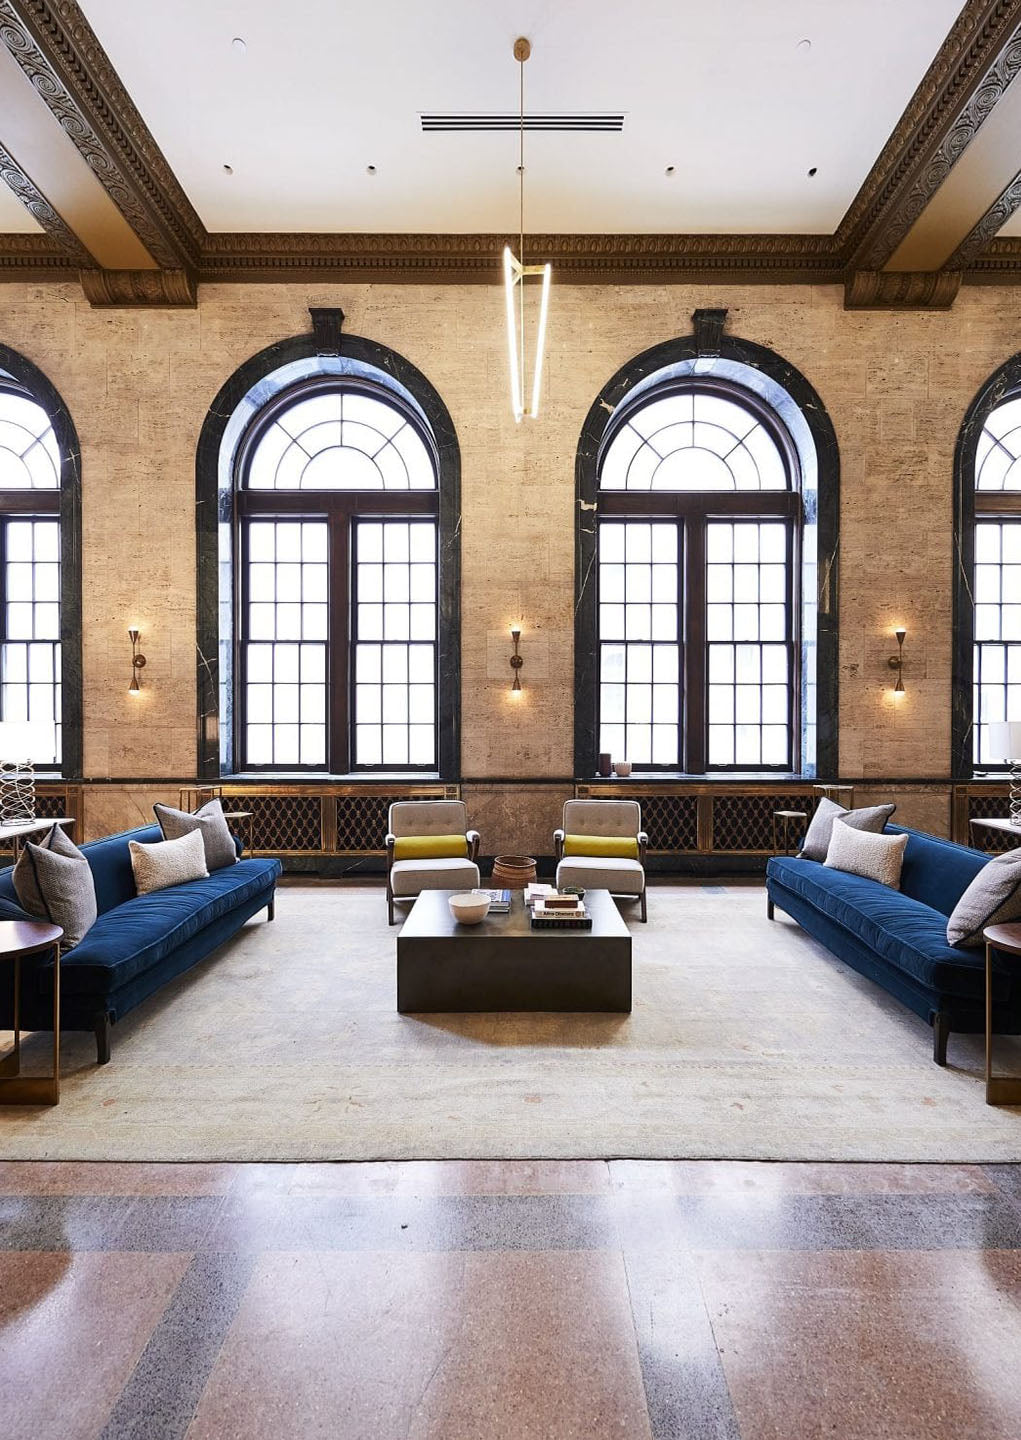 Noelle, Nashville - classic hotel lobby with dark wood details, large rounded windows, and blue couches